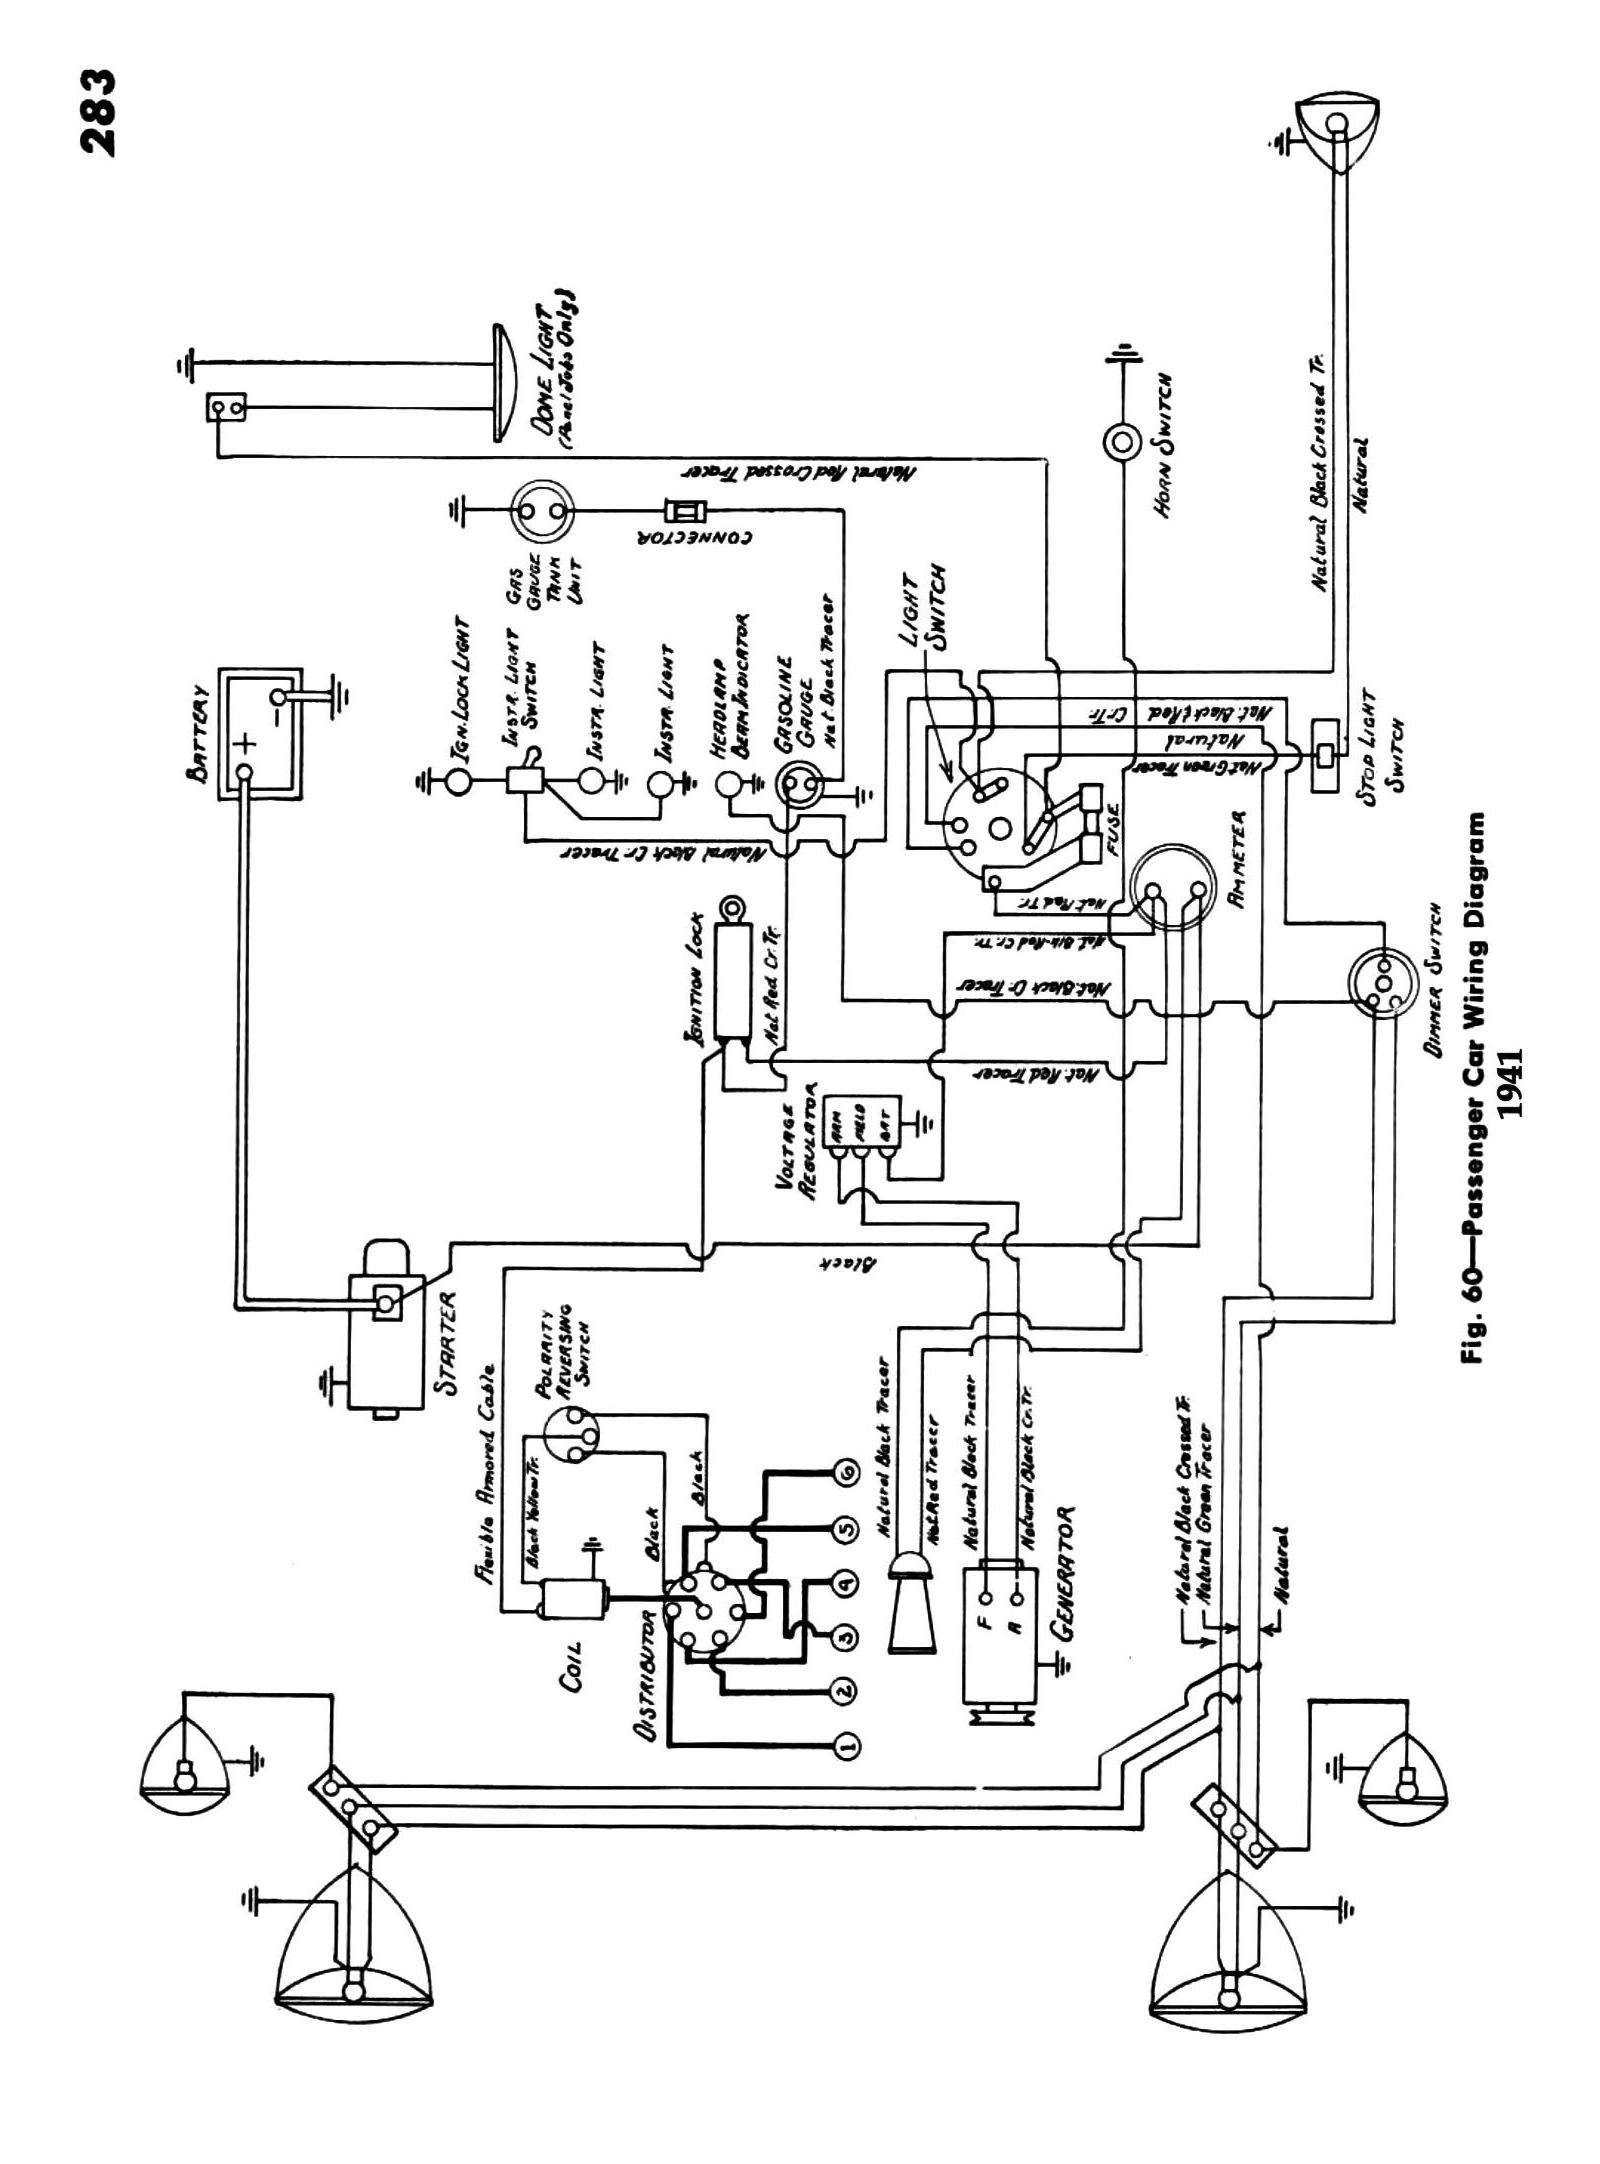 hight resolution of 1958 chevy truck wiring diagram wiring diagram todays chevrolet straight 6 engine 235 chevy engine wiring diagram